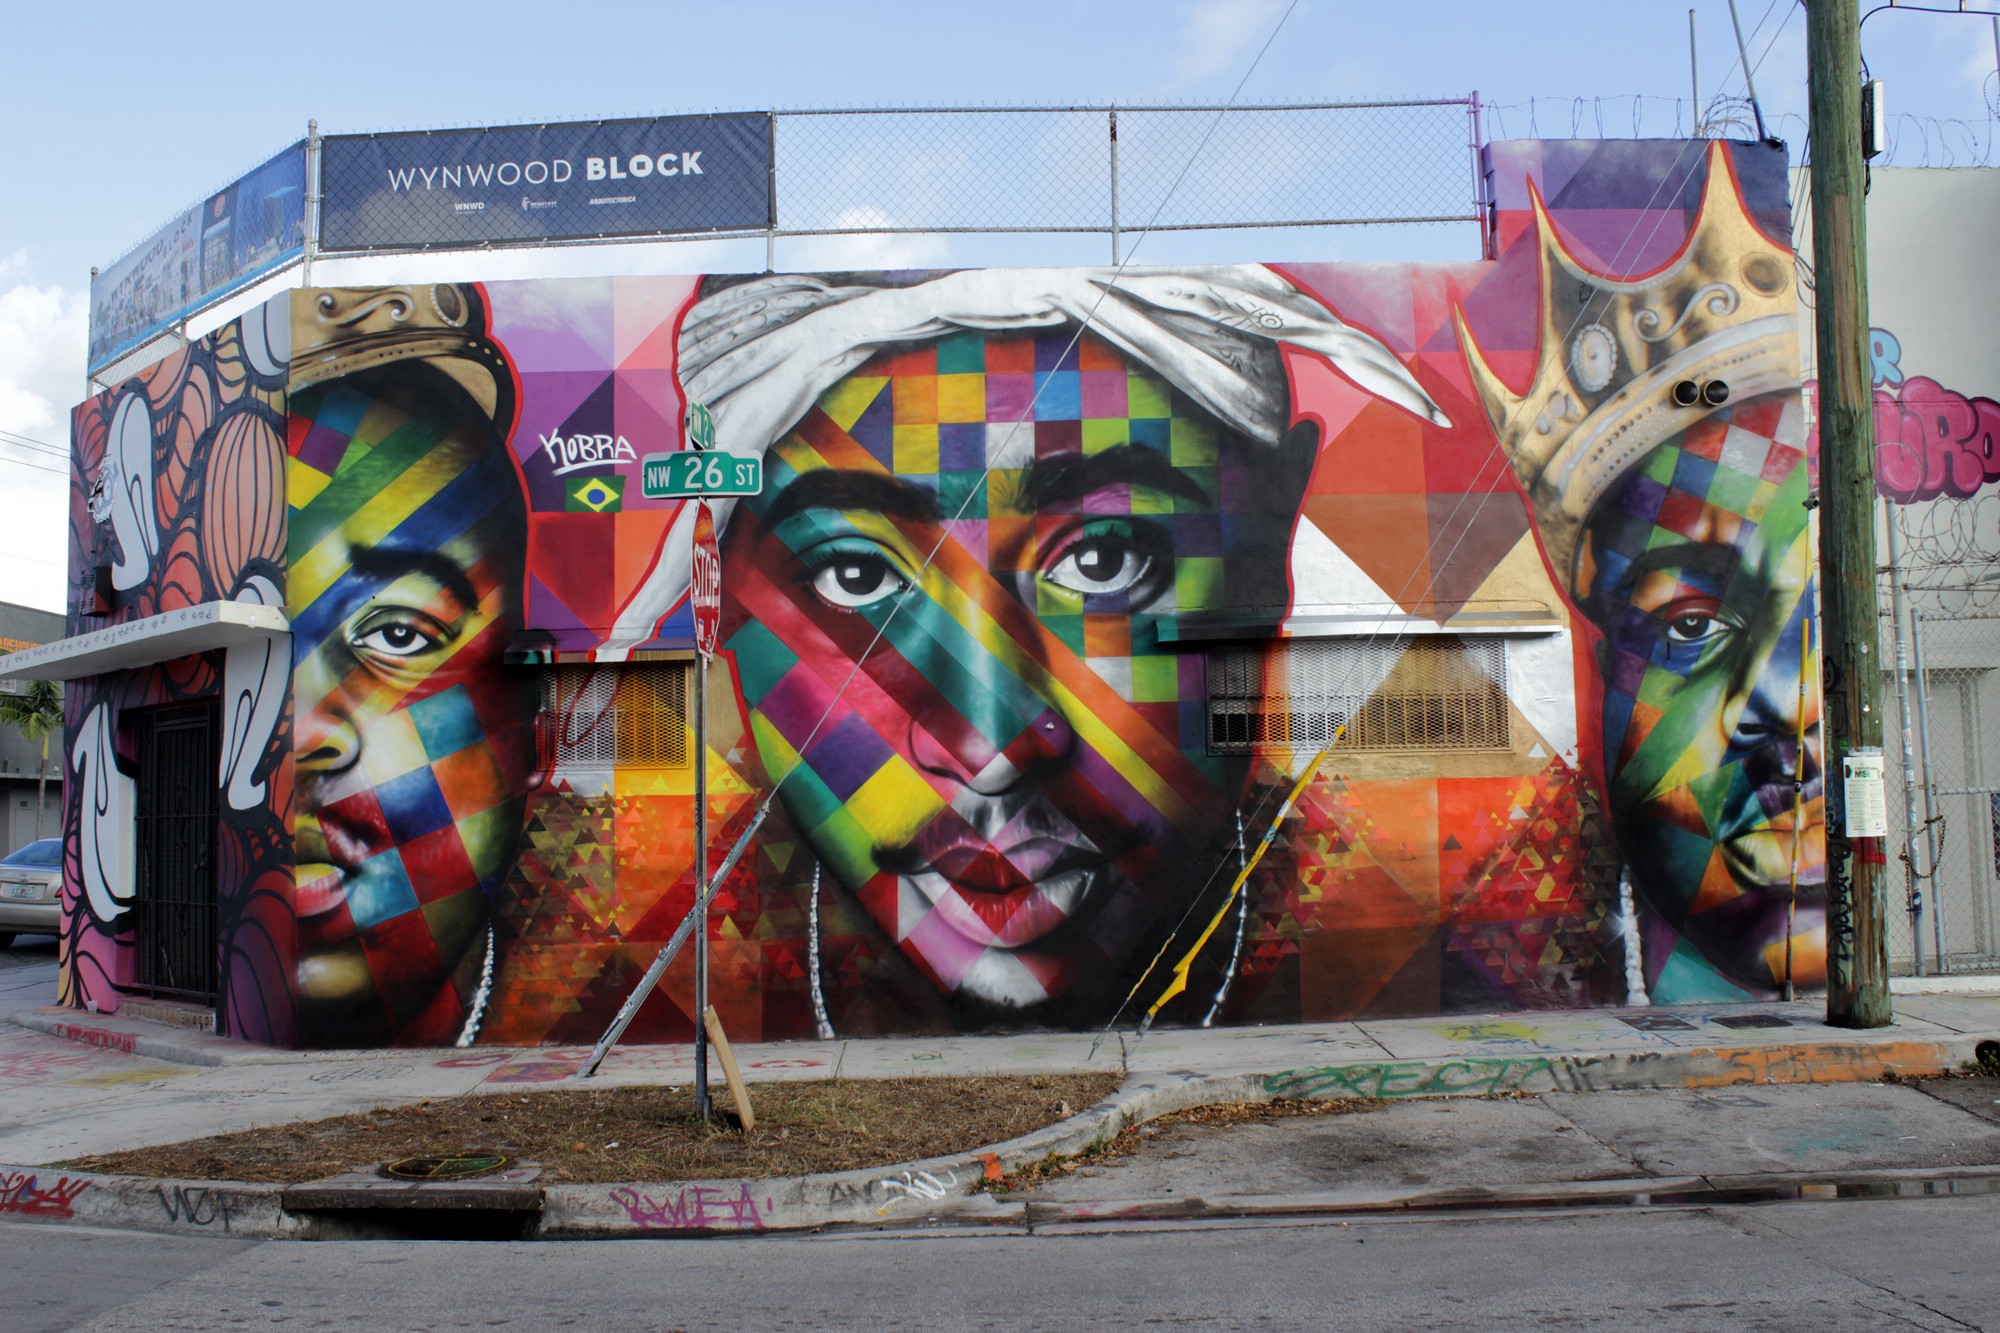 Exterior Wall Mural Tupac Tribute Murals And Graffiti From Around The World